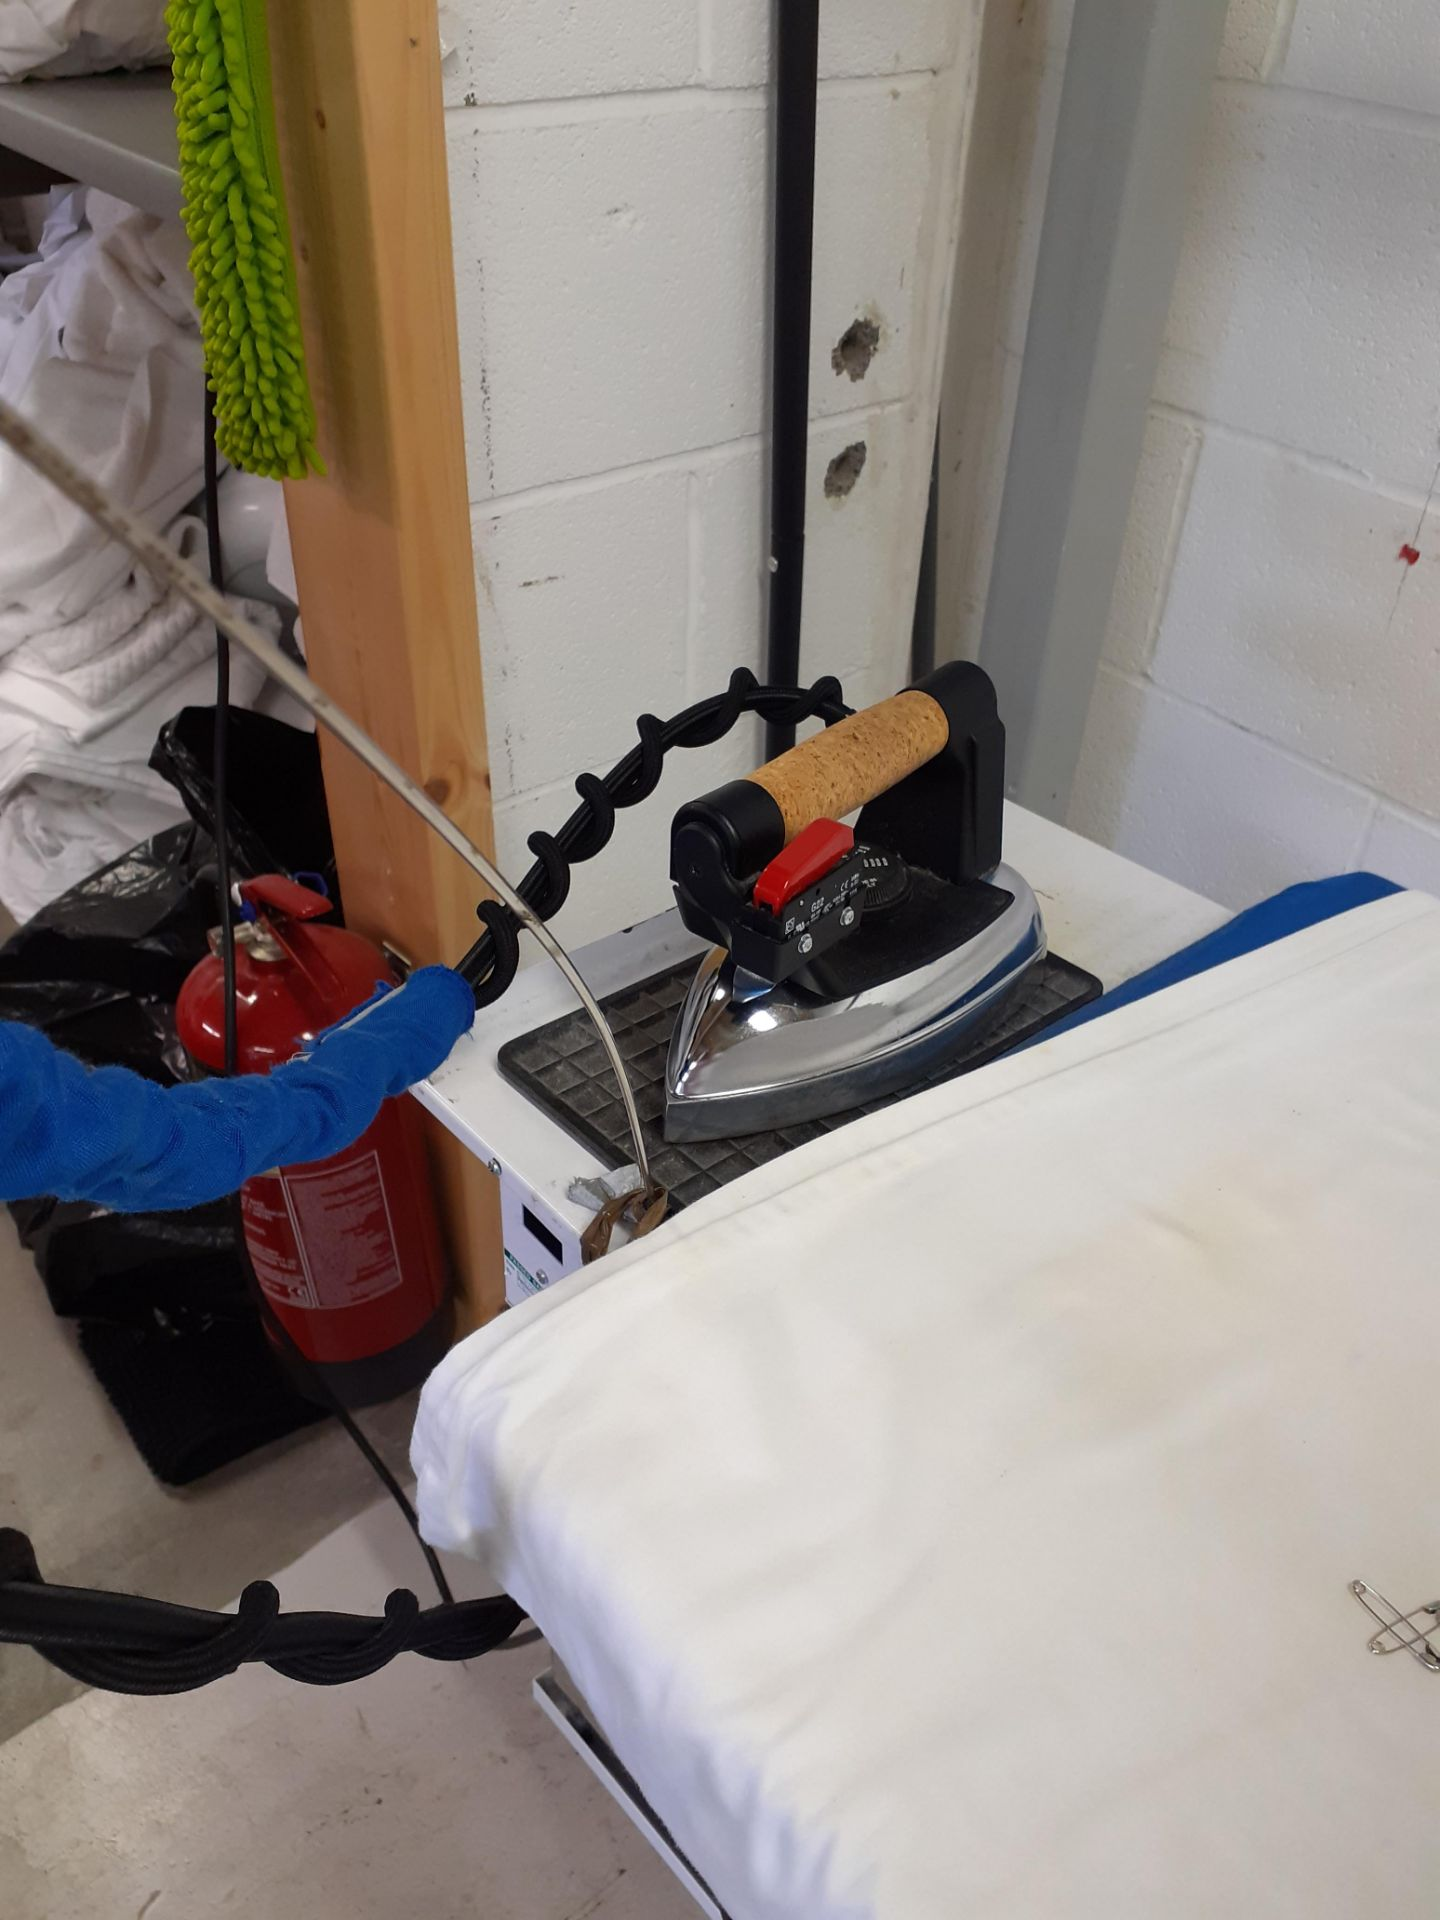 Eco Steam Generator, Iron and Ironing Board - Image 2 of 3